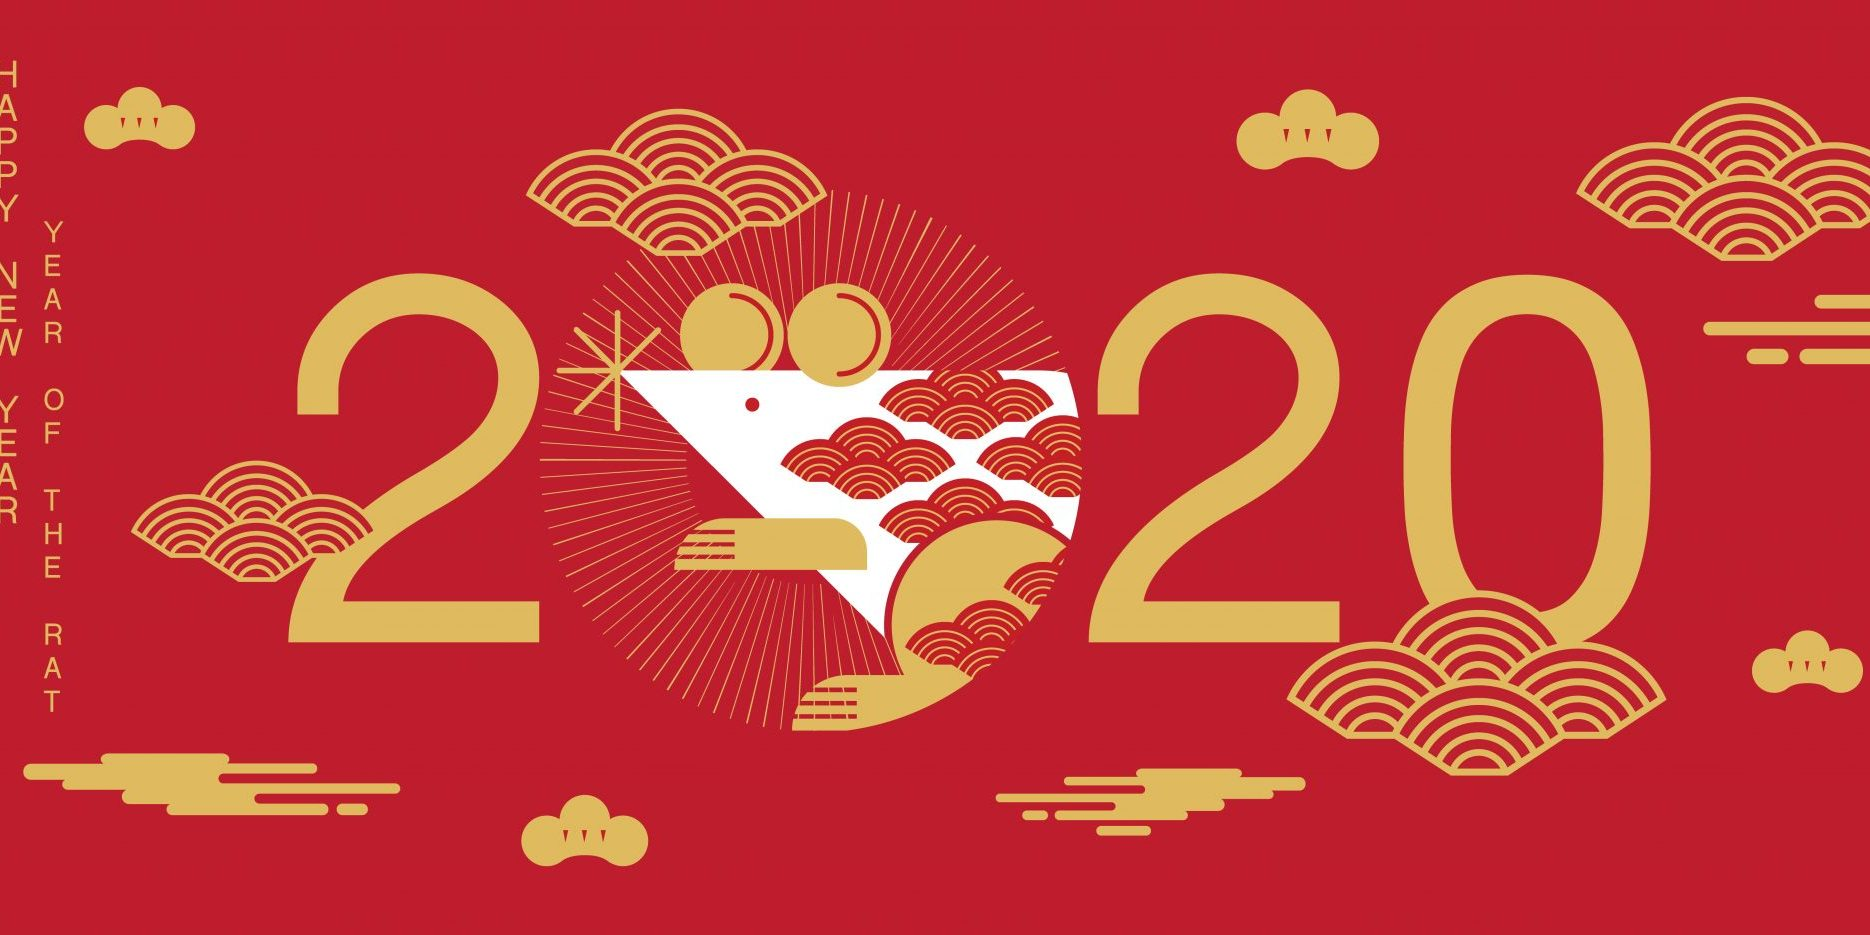 2020 année Rat metal - year prediction - horoscope 12 signes chinois - loktinfengshui (traduit en français et spanish) Chinese_new_year_2020_02-scaled-1870x935